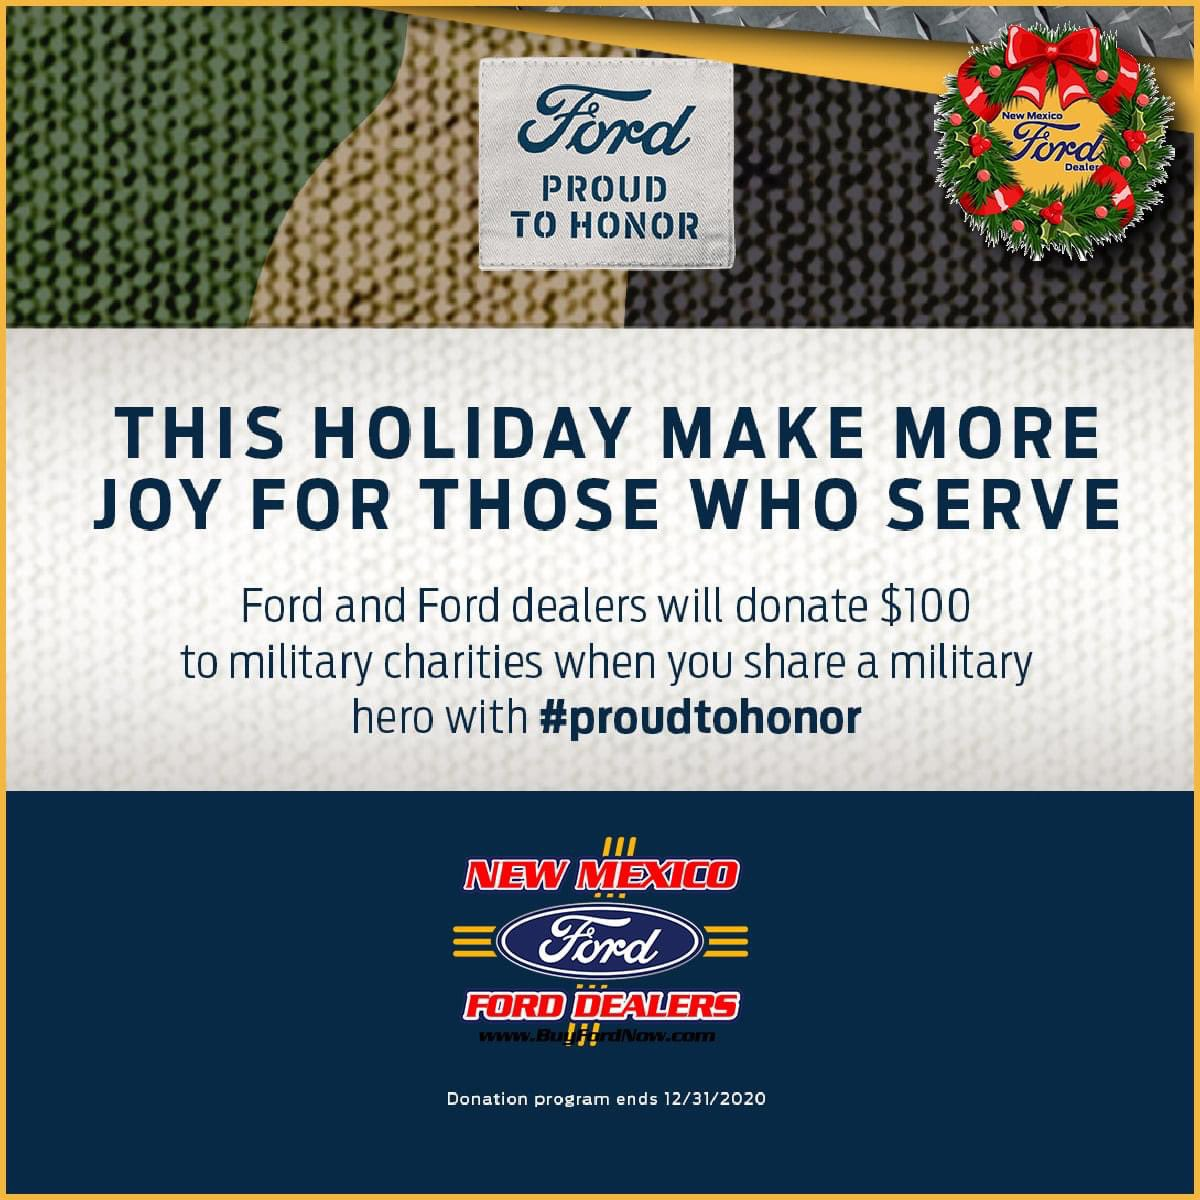 YOU'RE PROUD TO SERVE. WE'RE PROUD TO HONOR. Join Ford and your New Mexico Ford Dealers as we donate up to $3.5 million* on your behalf to Proud to Honor supported charities by simply using #PROUDTOHONOR -